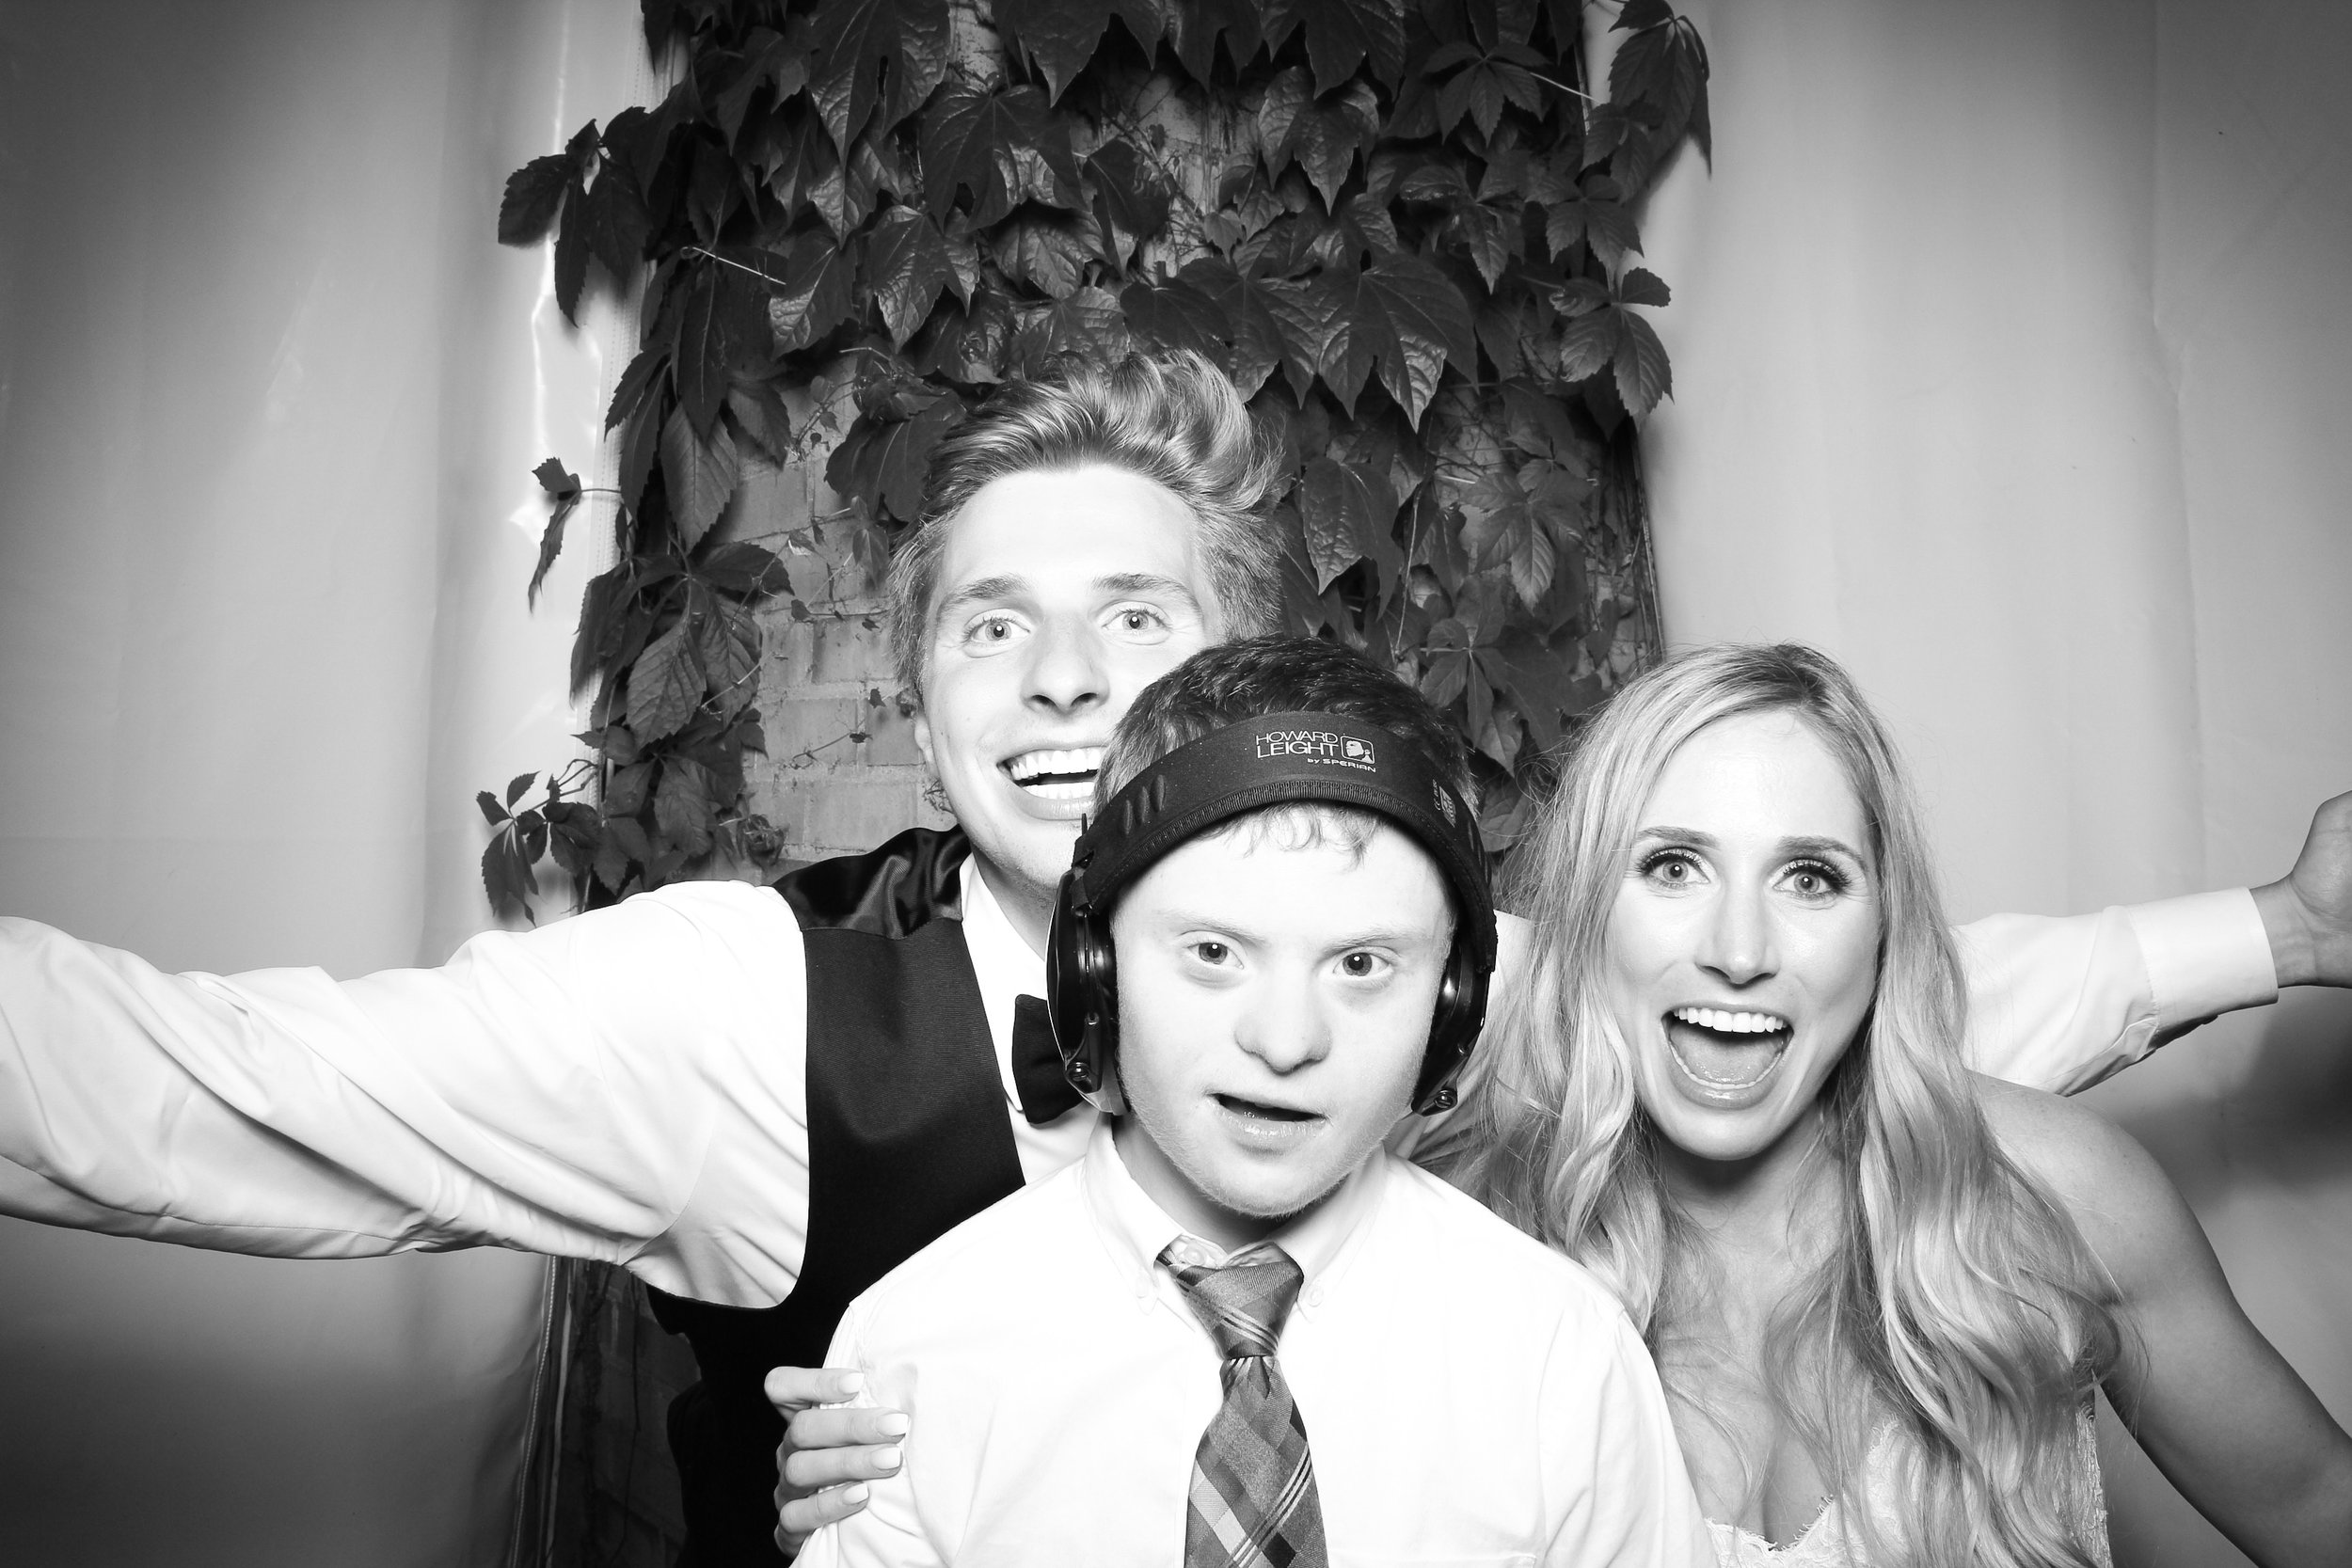 Chicago_Vintage_Wedding_Photobooth_Botanic_Garden_09.jpg